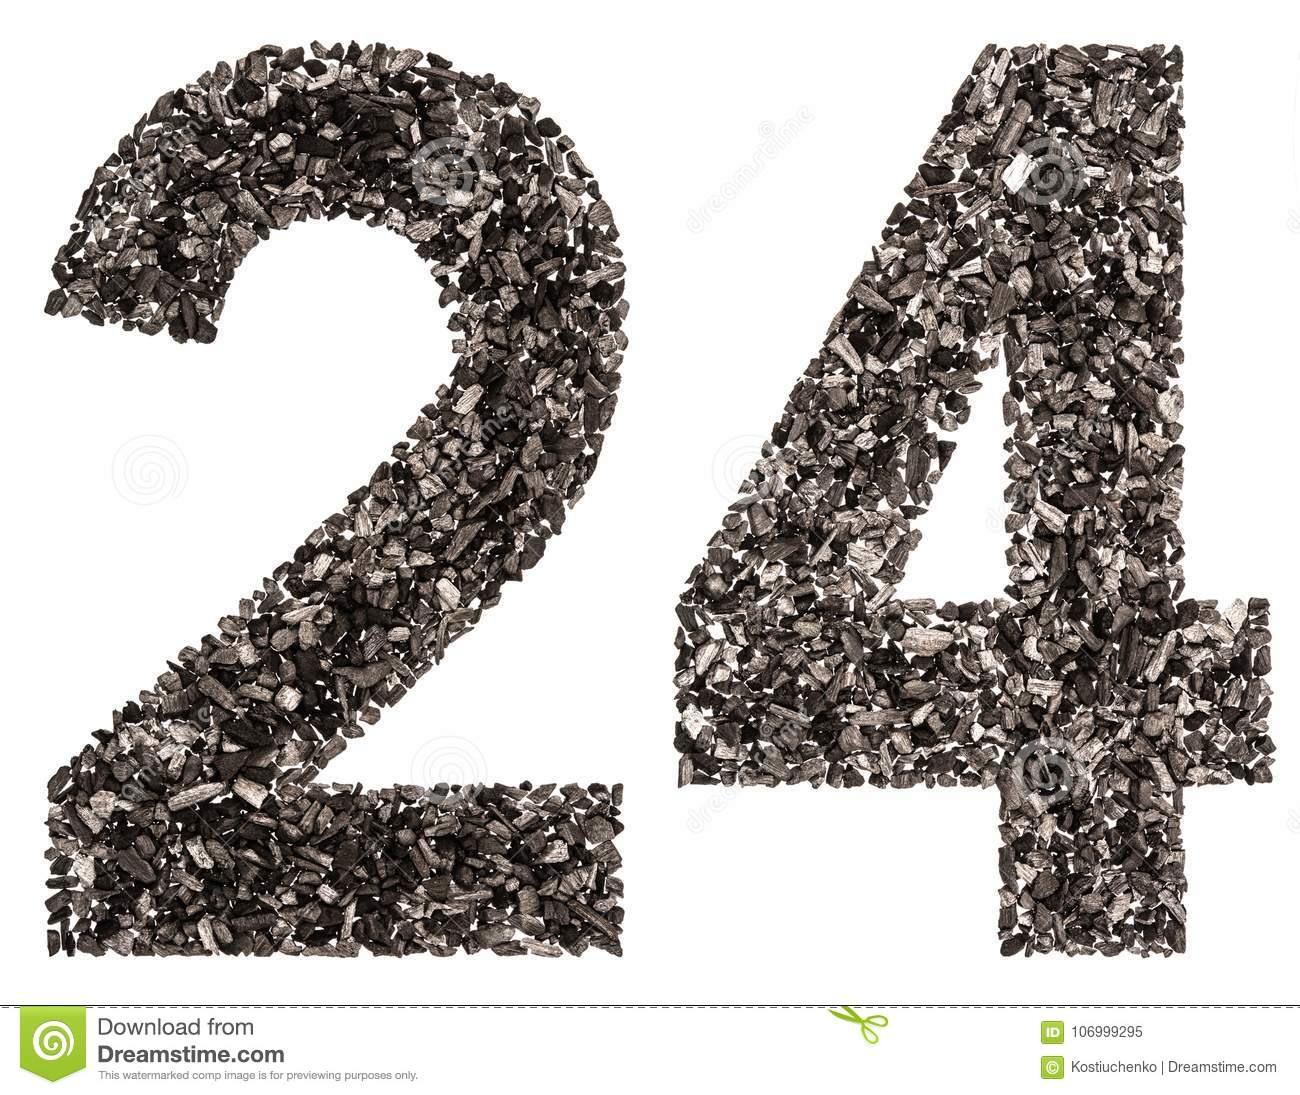 Arabic numeral 24, twenty four, from black a natural charcoal, i